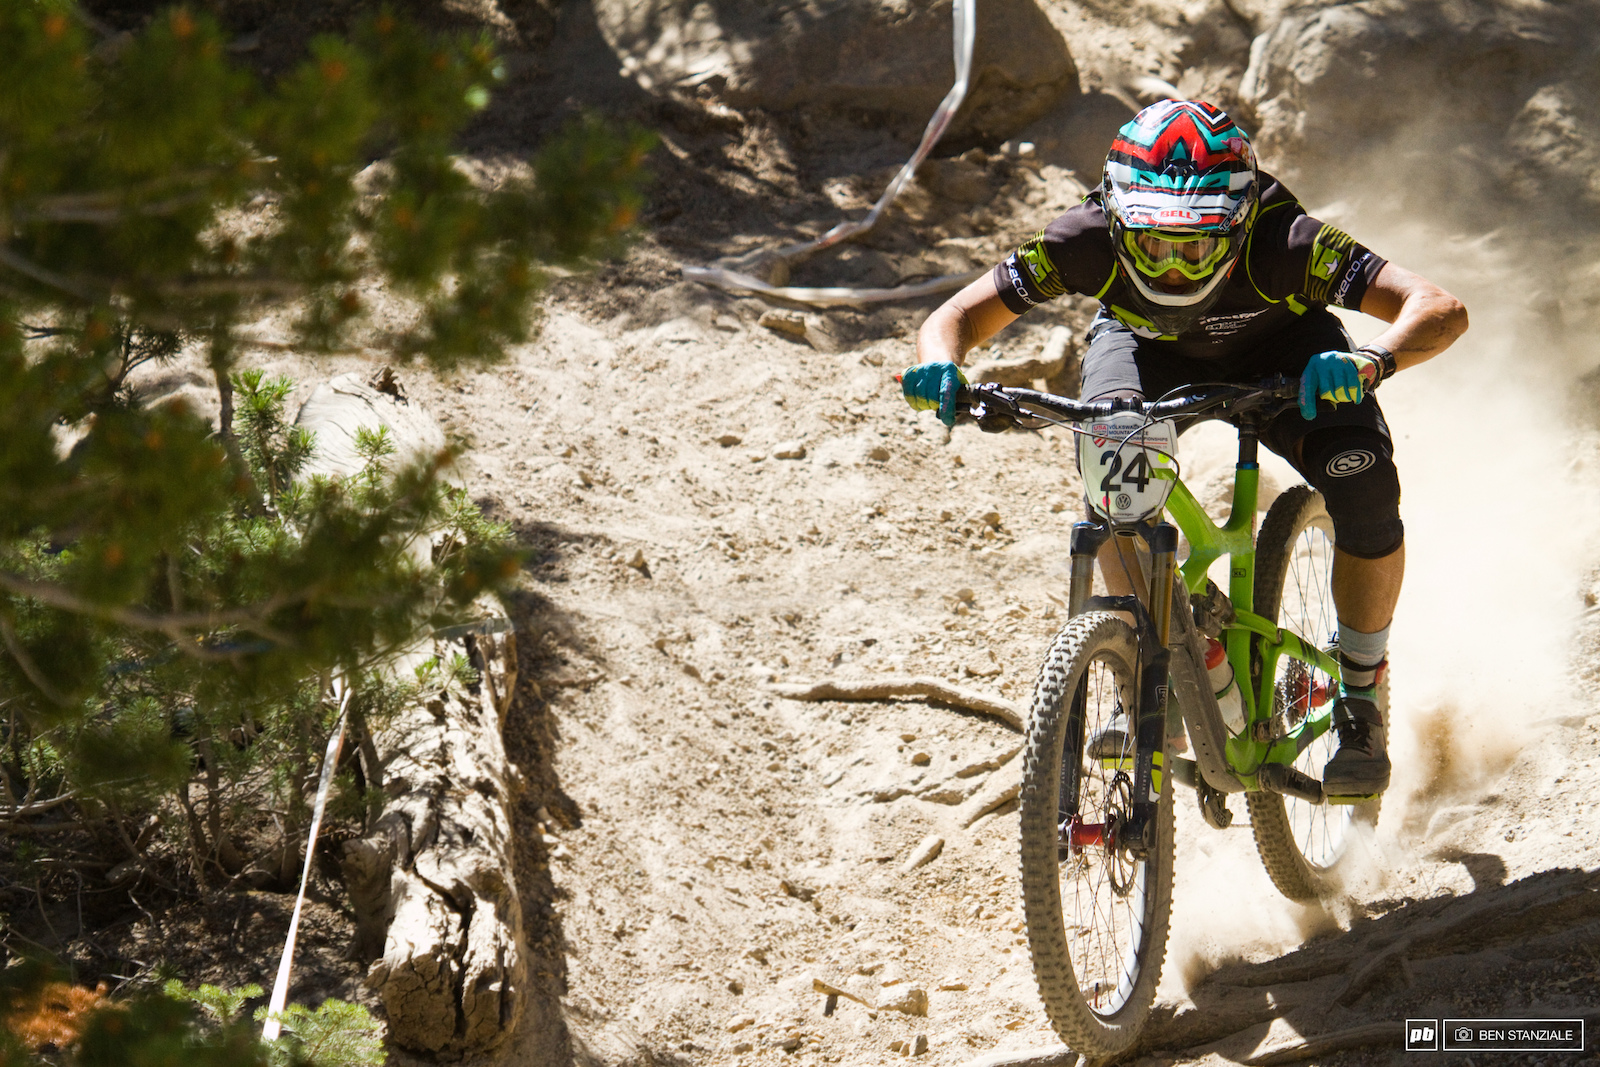 Pro Men riders make their way through a final rough and loose section before entering the slalom section of Stage 3.